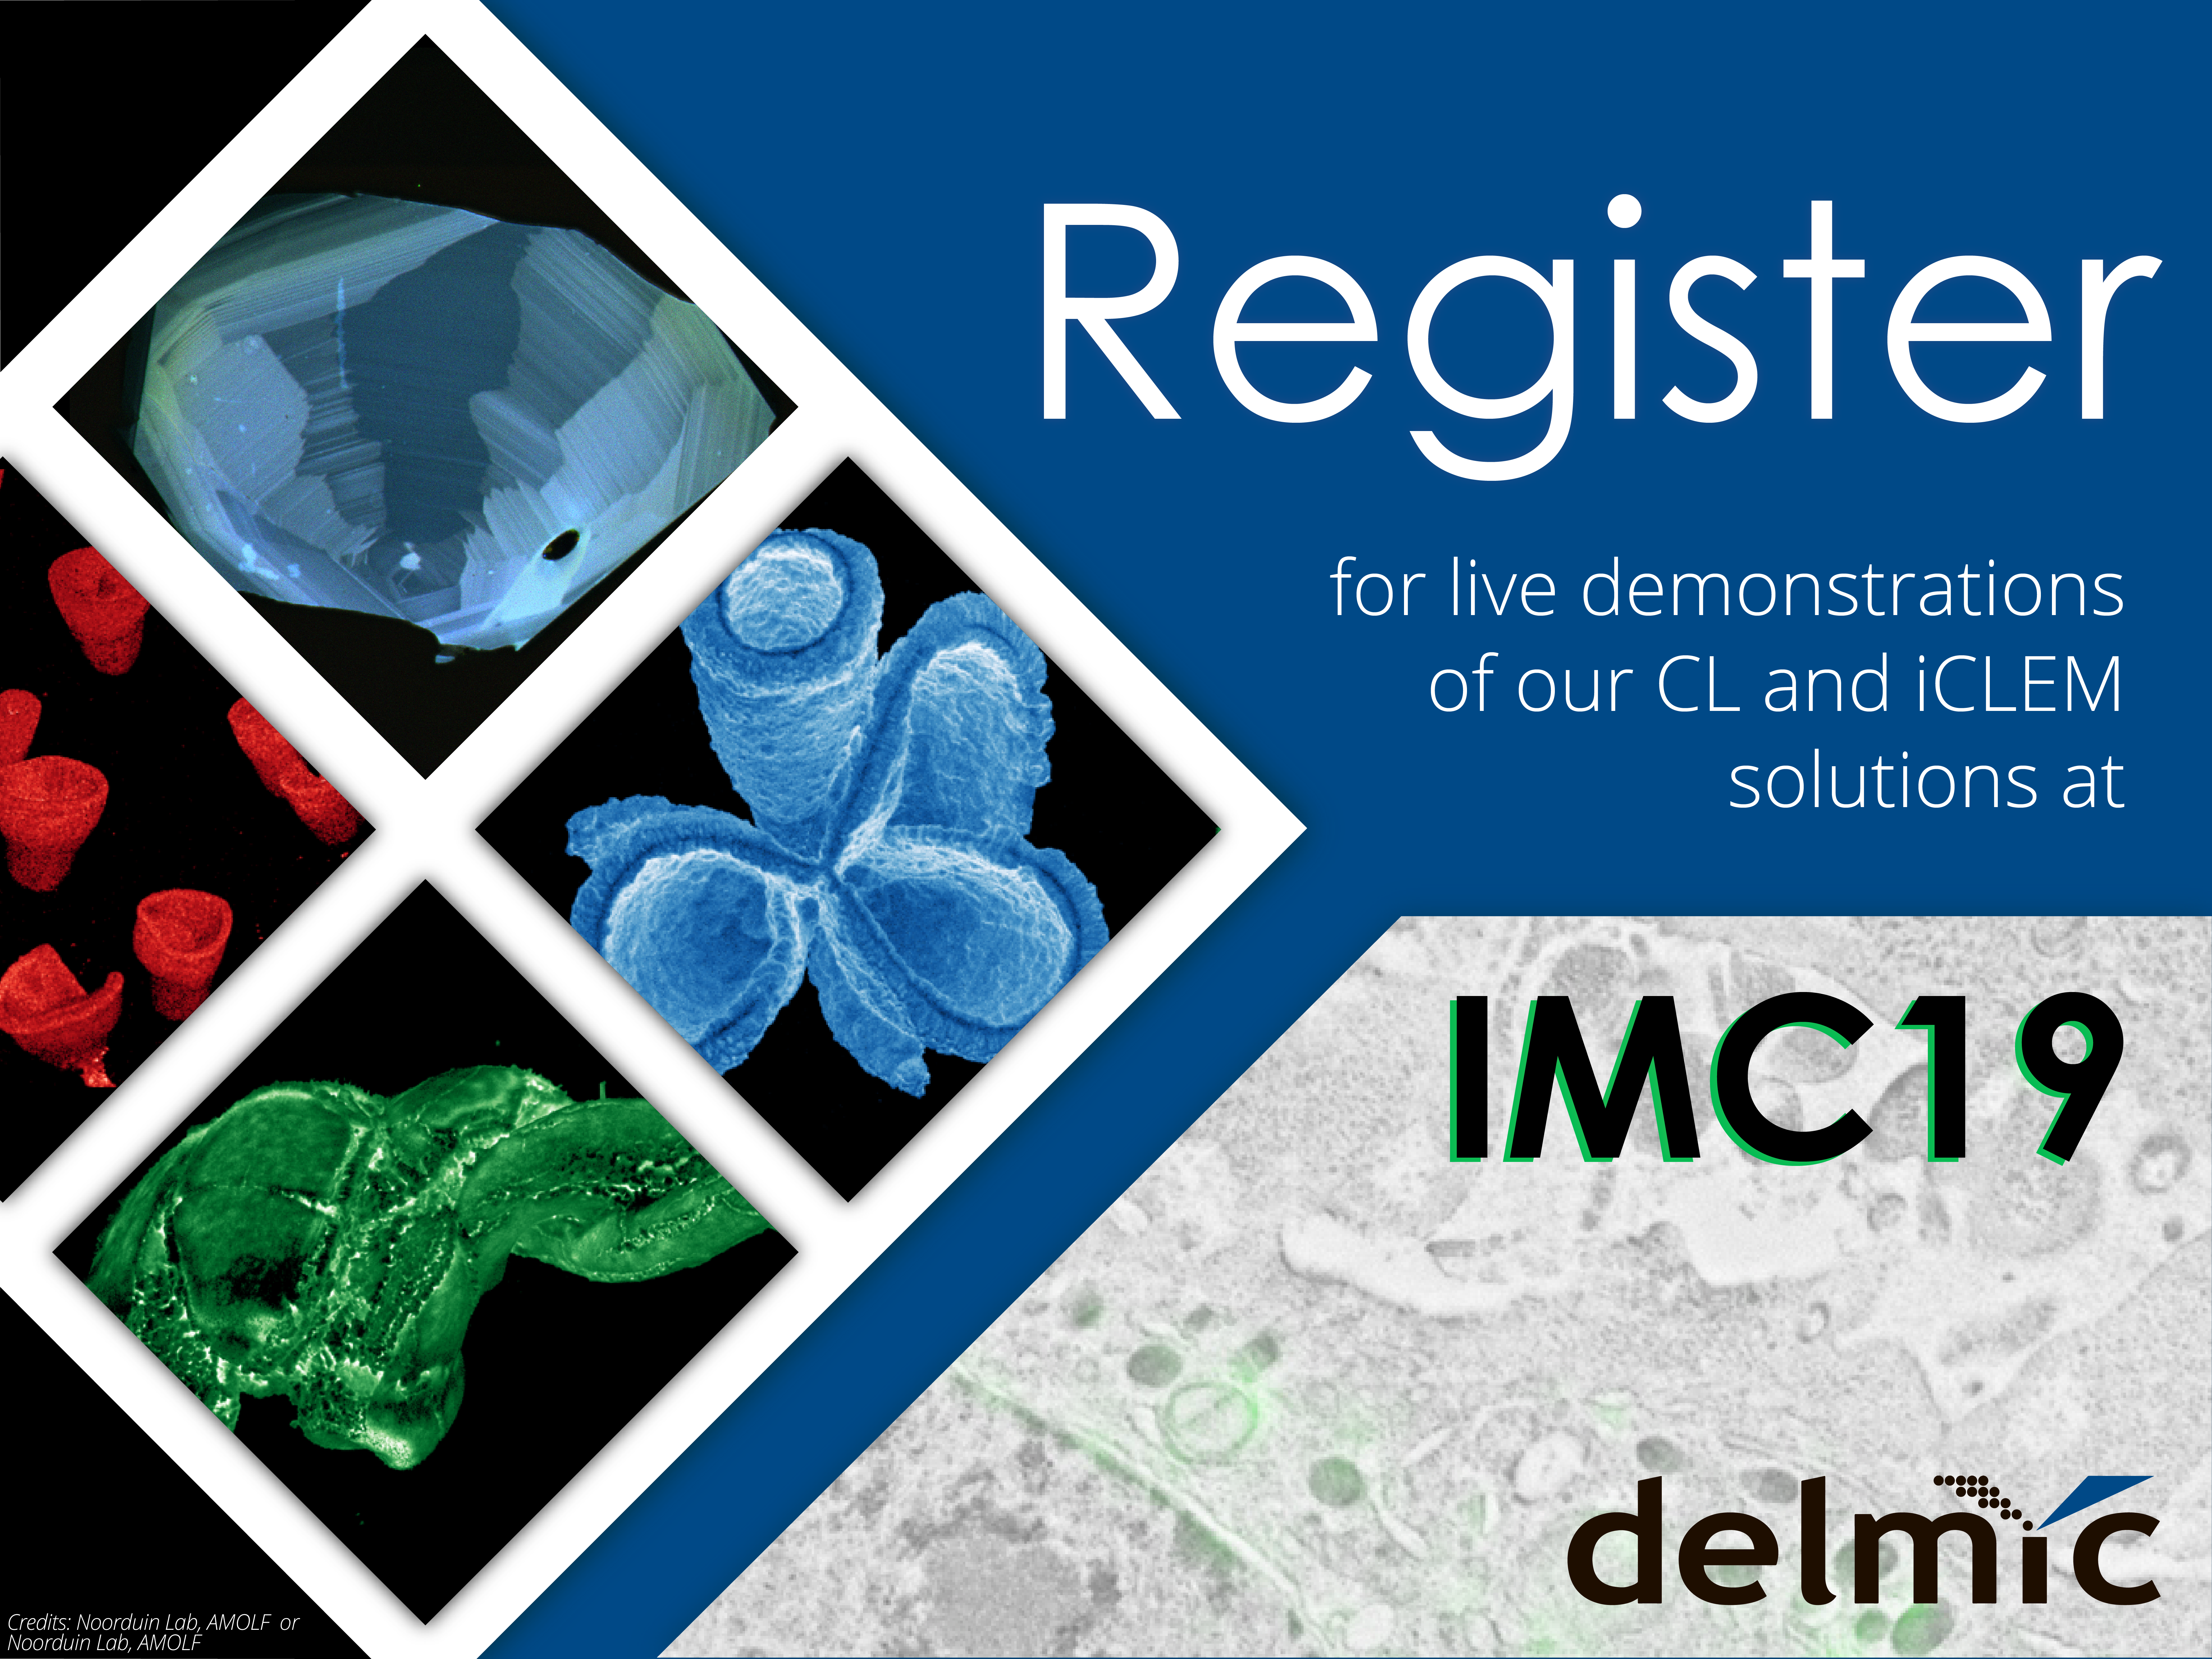 Delmic is coming to the IMC19: make sure to register for a demo!